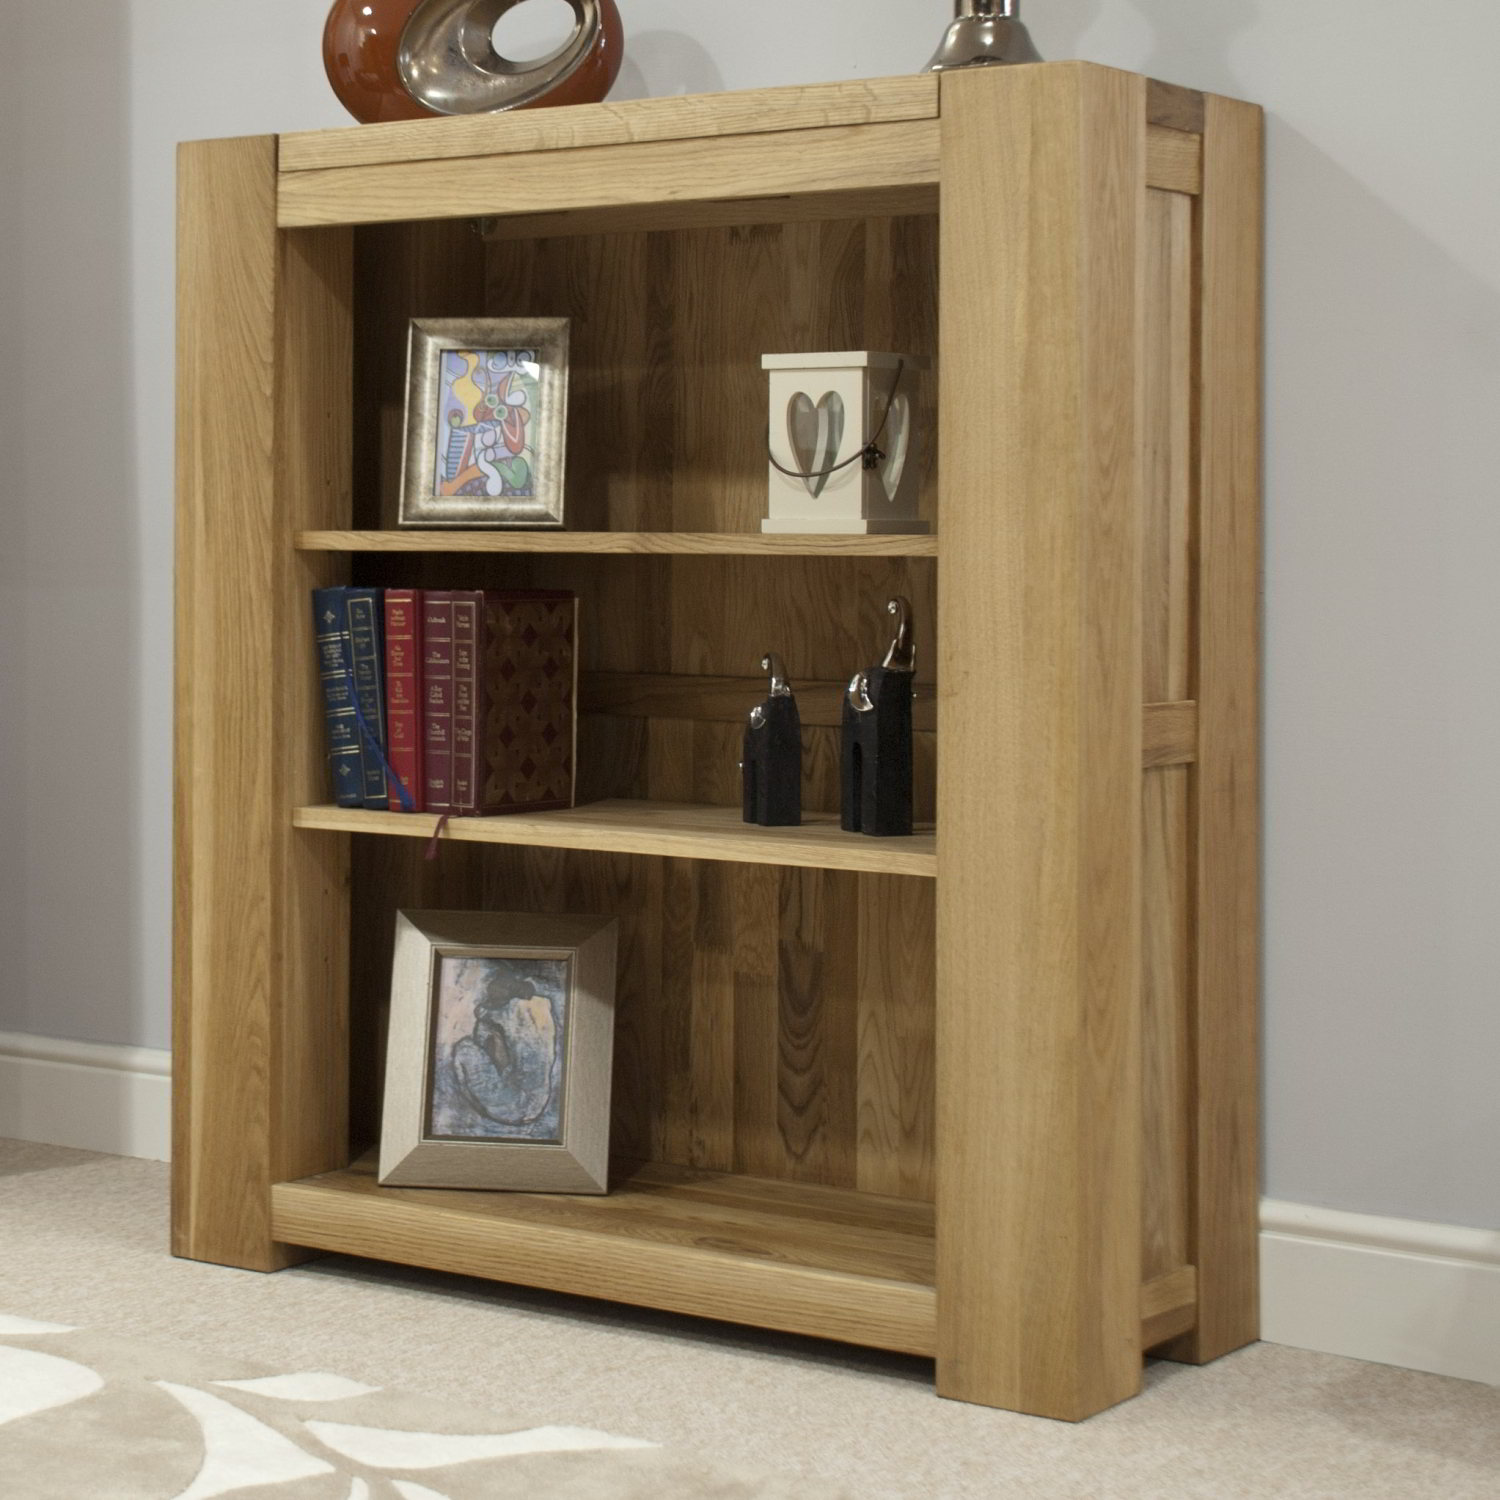 Details About Pemberton Solid Oak Furniture Small Living Room Office Bookcase